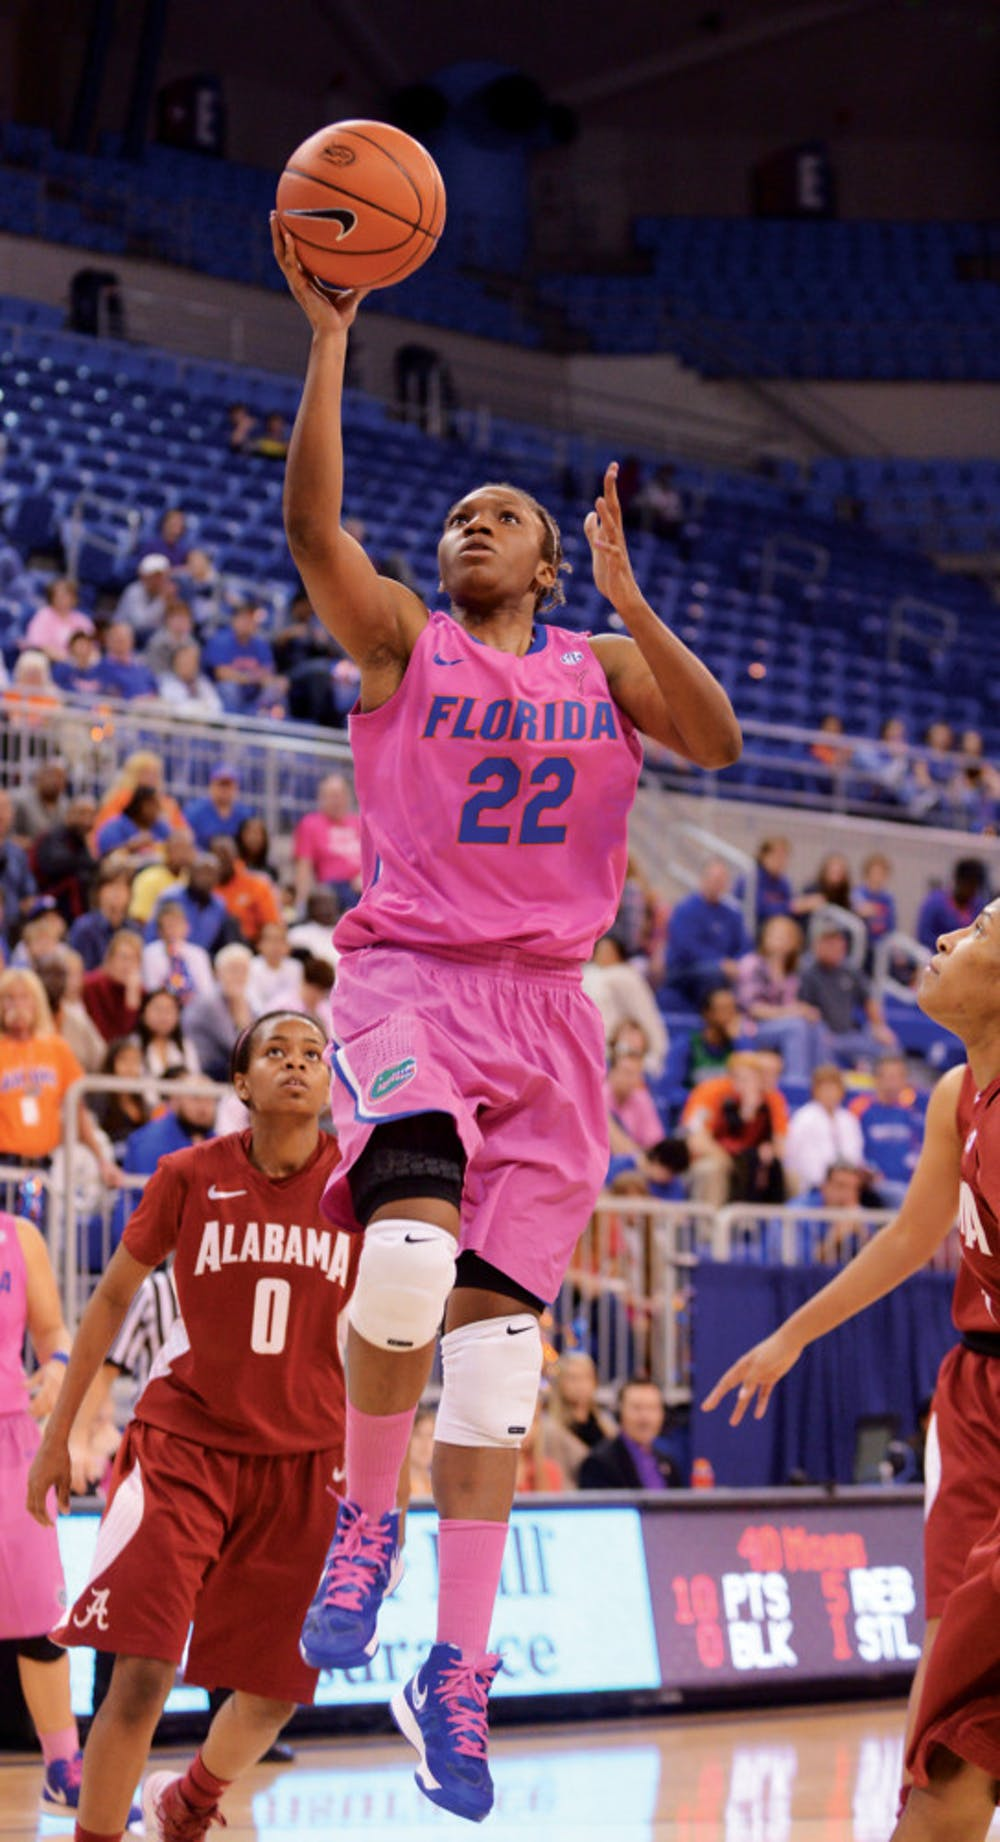 <p><span>Kayla Lewis (22) shoots during Florida's 87-54 win against Alabama on Feb. 3 in the O'Connell Center.</span></p> <div><span><br /></span></div>